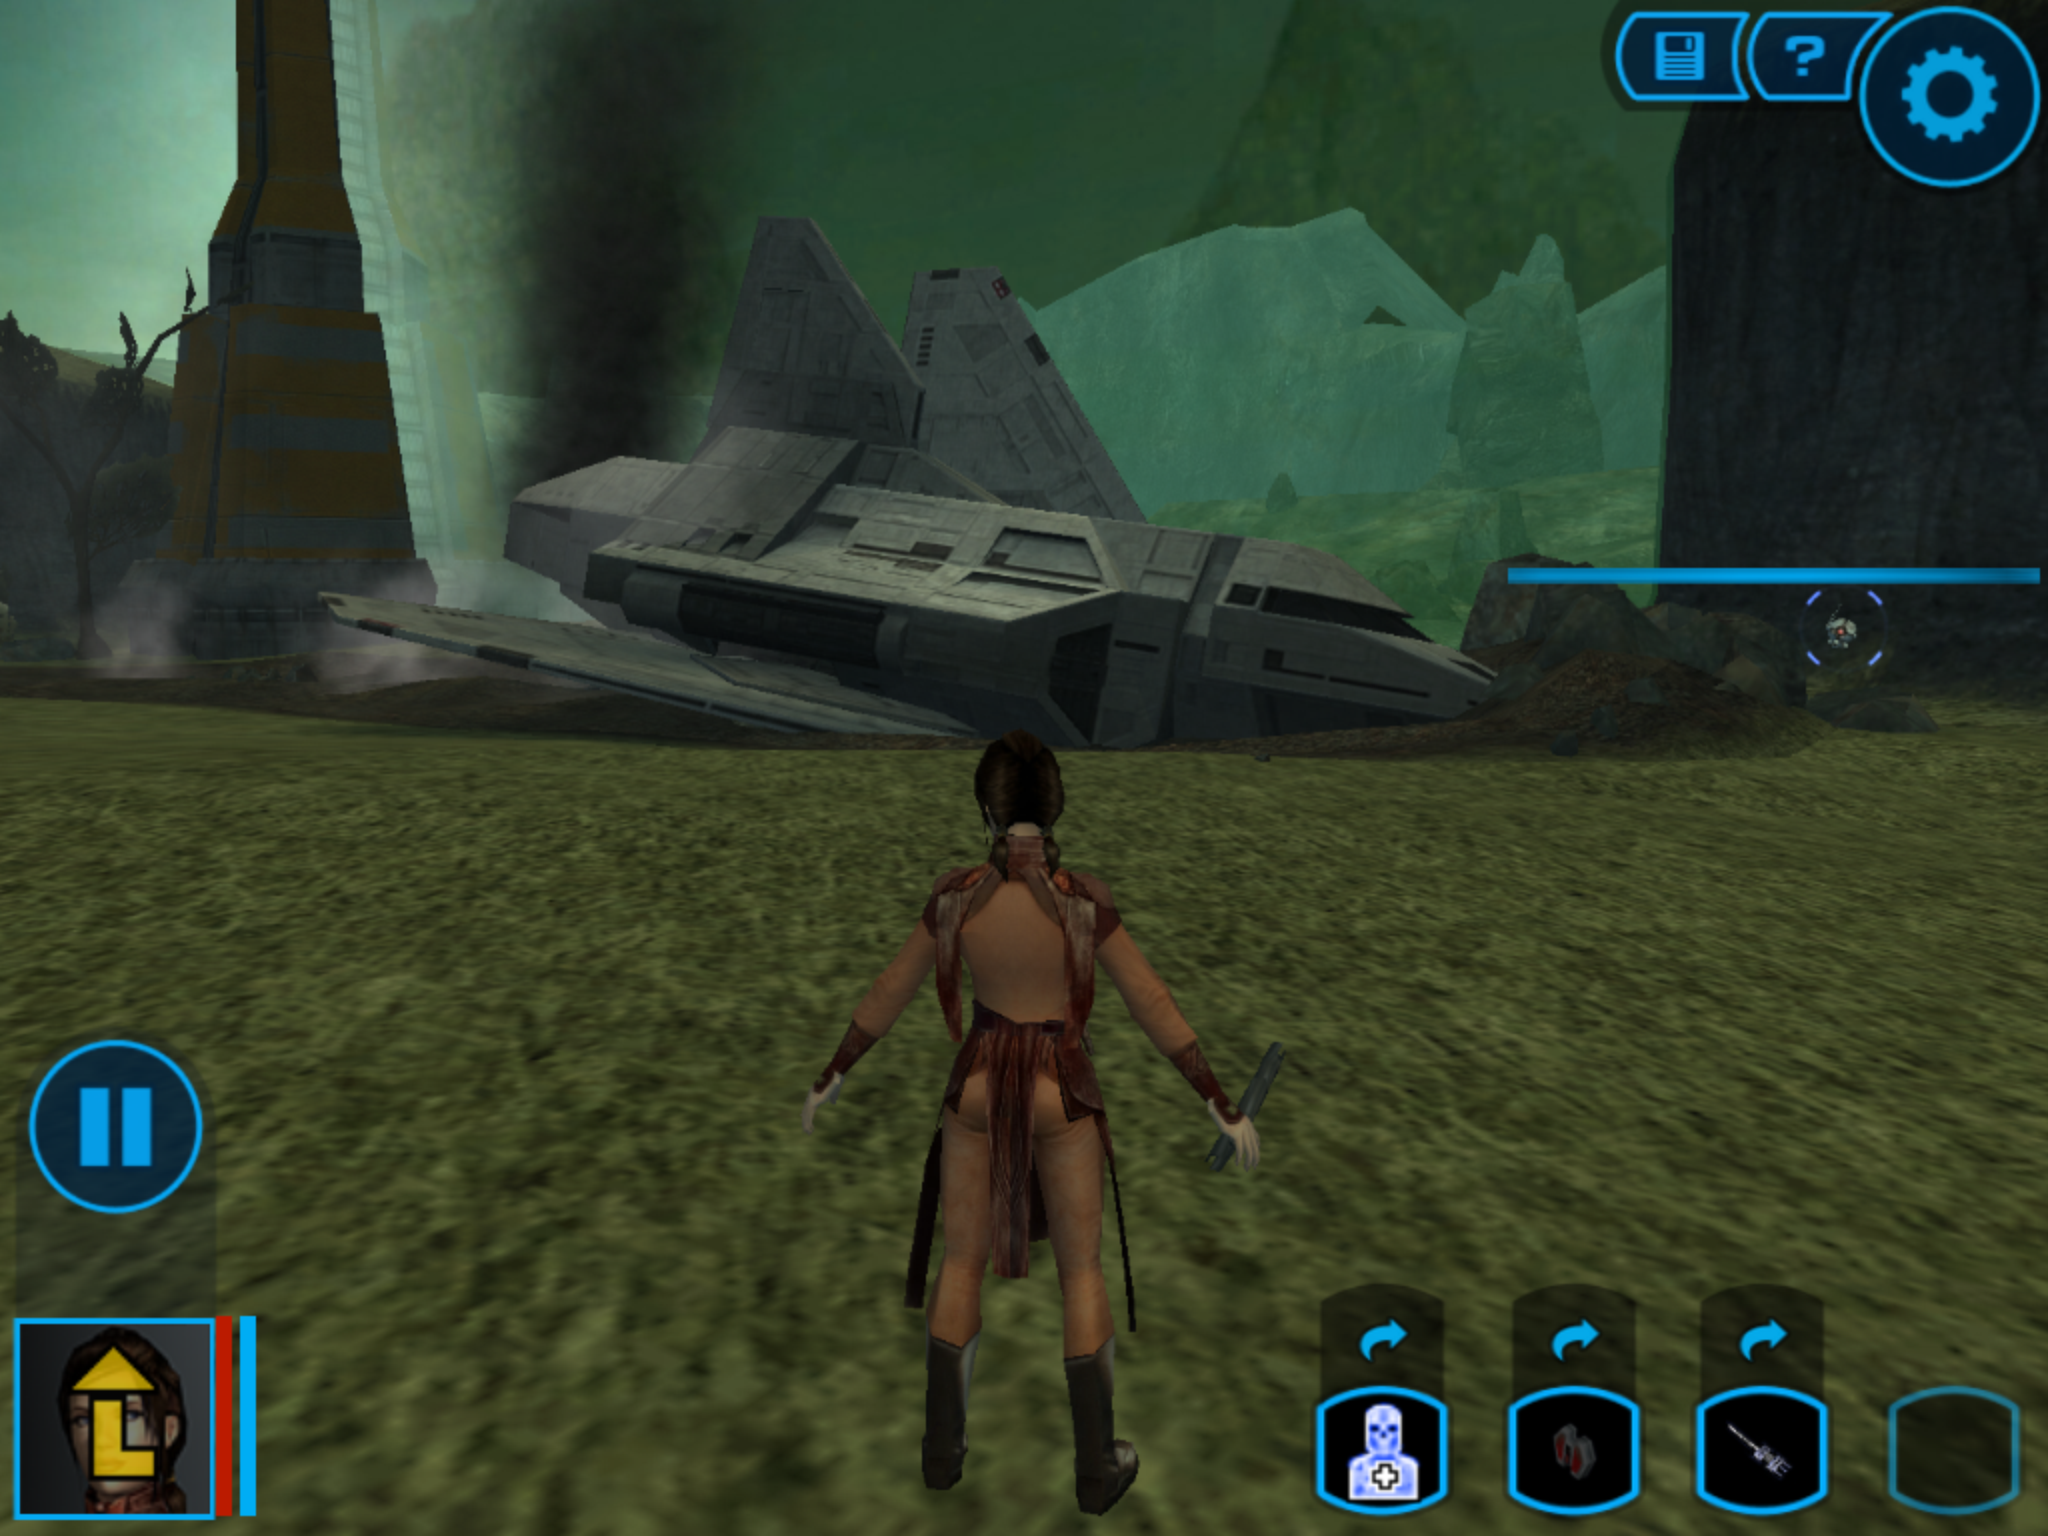 WIP] KOTOR II Mobile (K2M) Project - KOTOR II TSL Content Ported to